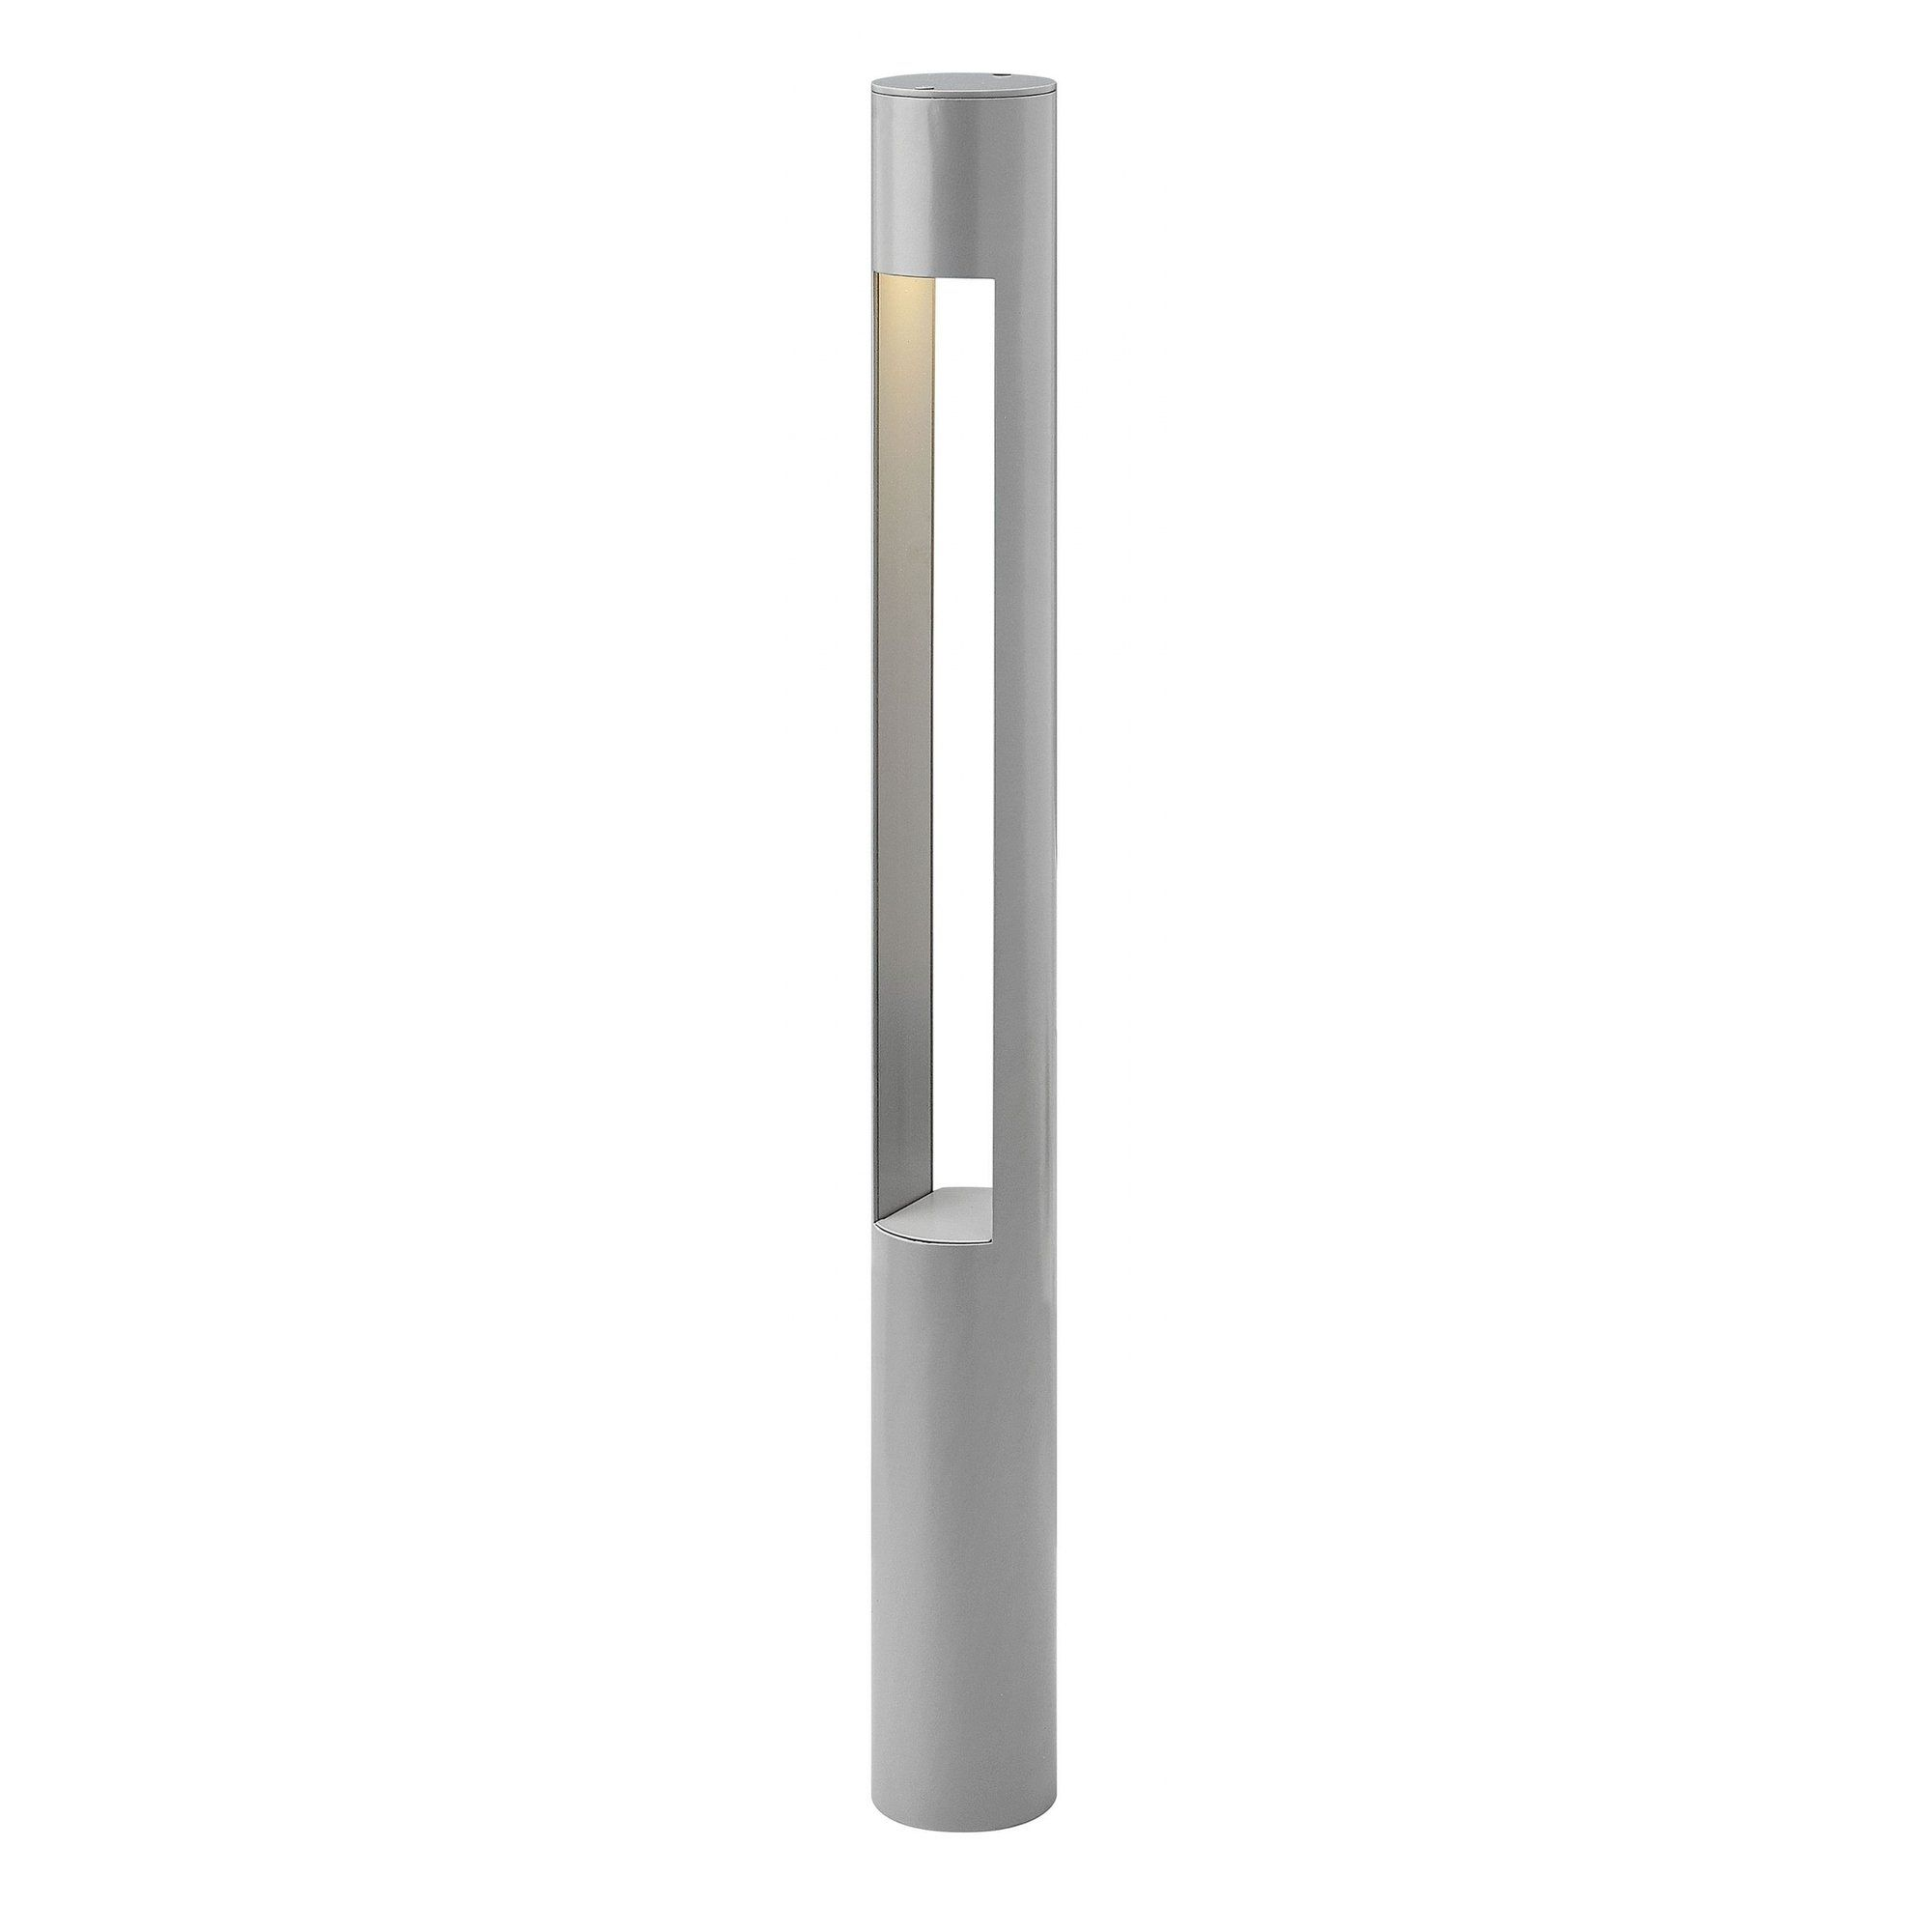 Hinkley Landscape Atlantis 8 Watt 120 Volt Bollard Light Silver Hinkley Lighting Hinkley Lighting Bollard Lighting Led Outdoor Wall Lights